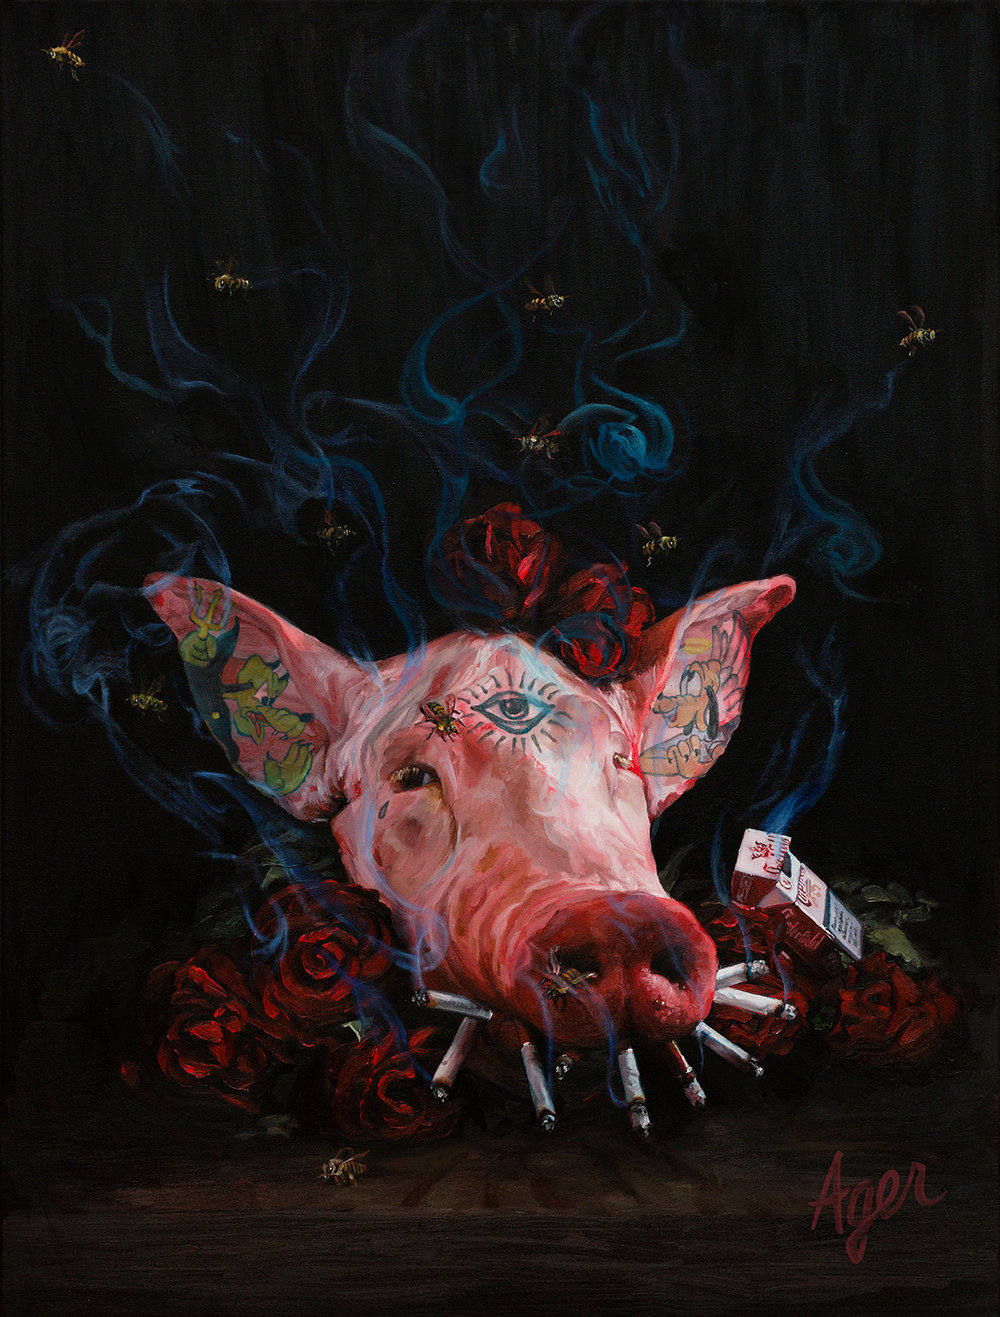 Smokin' Me Out, 60x80cm, oil on canvas.